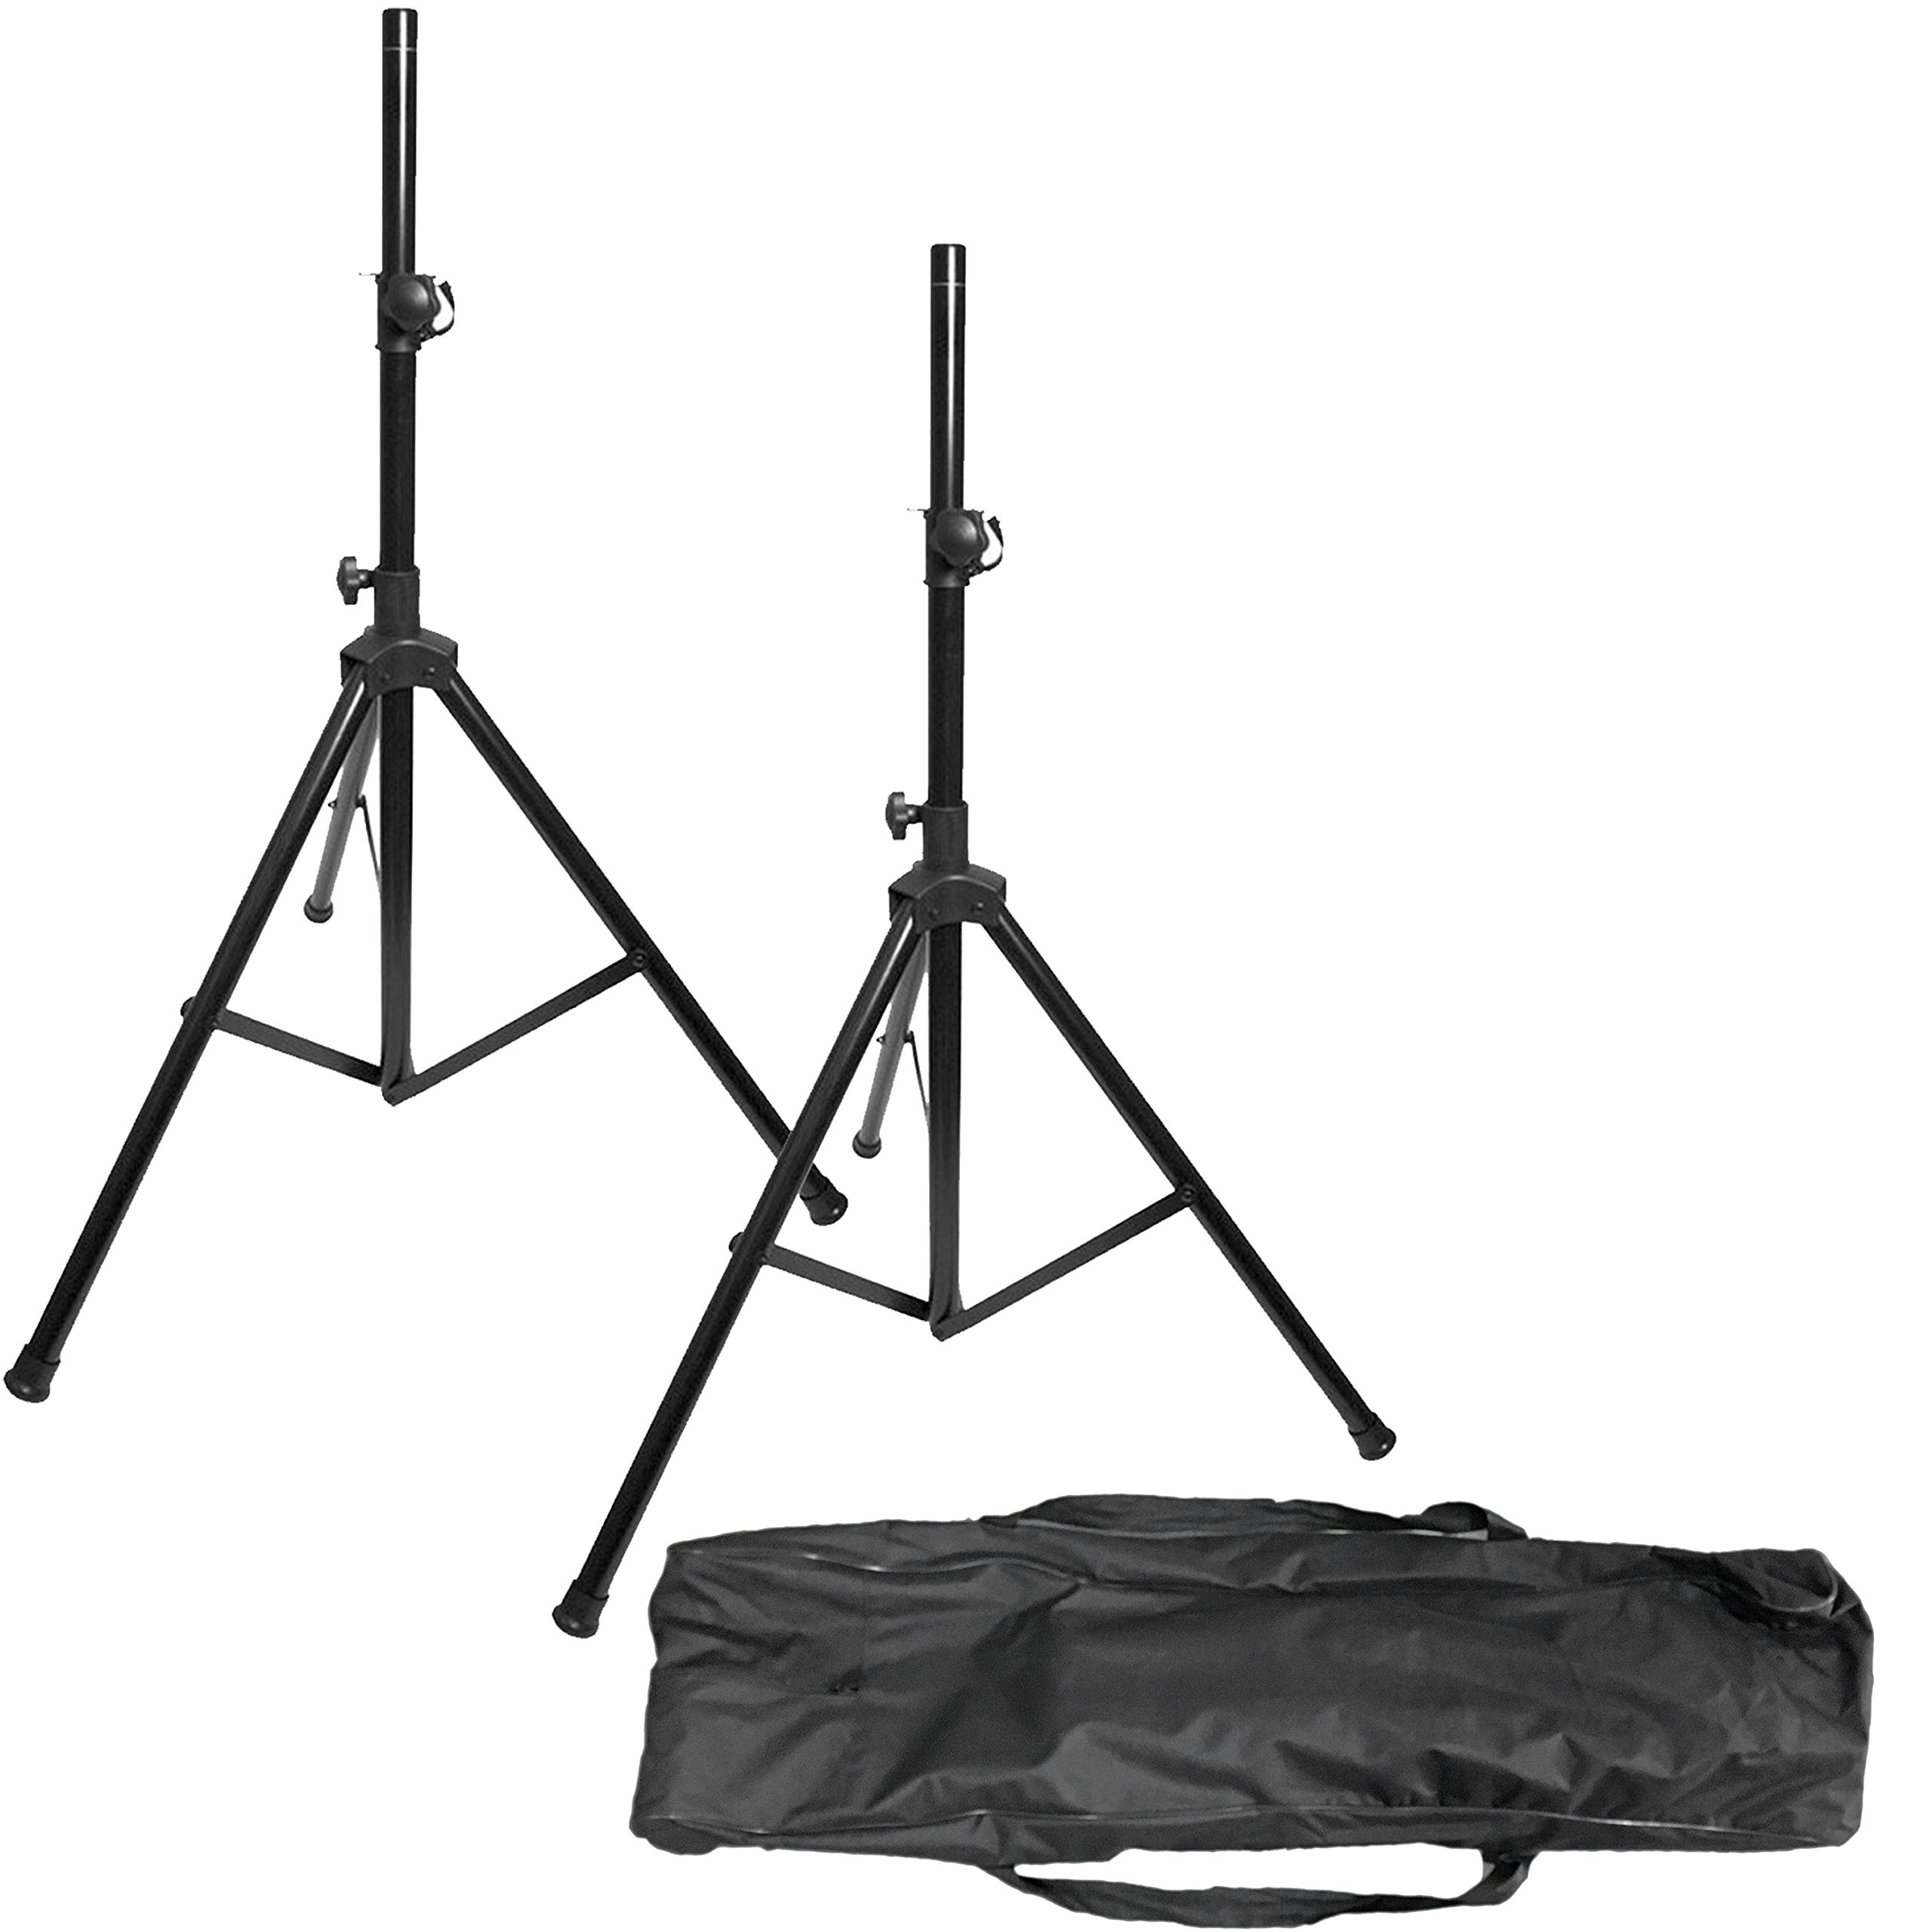 EMB Professional Pair of SS12 Heavy Duty 6.5FT Tripod Speaker Stage Stands With Carrying Bag